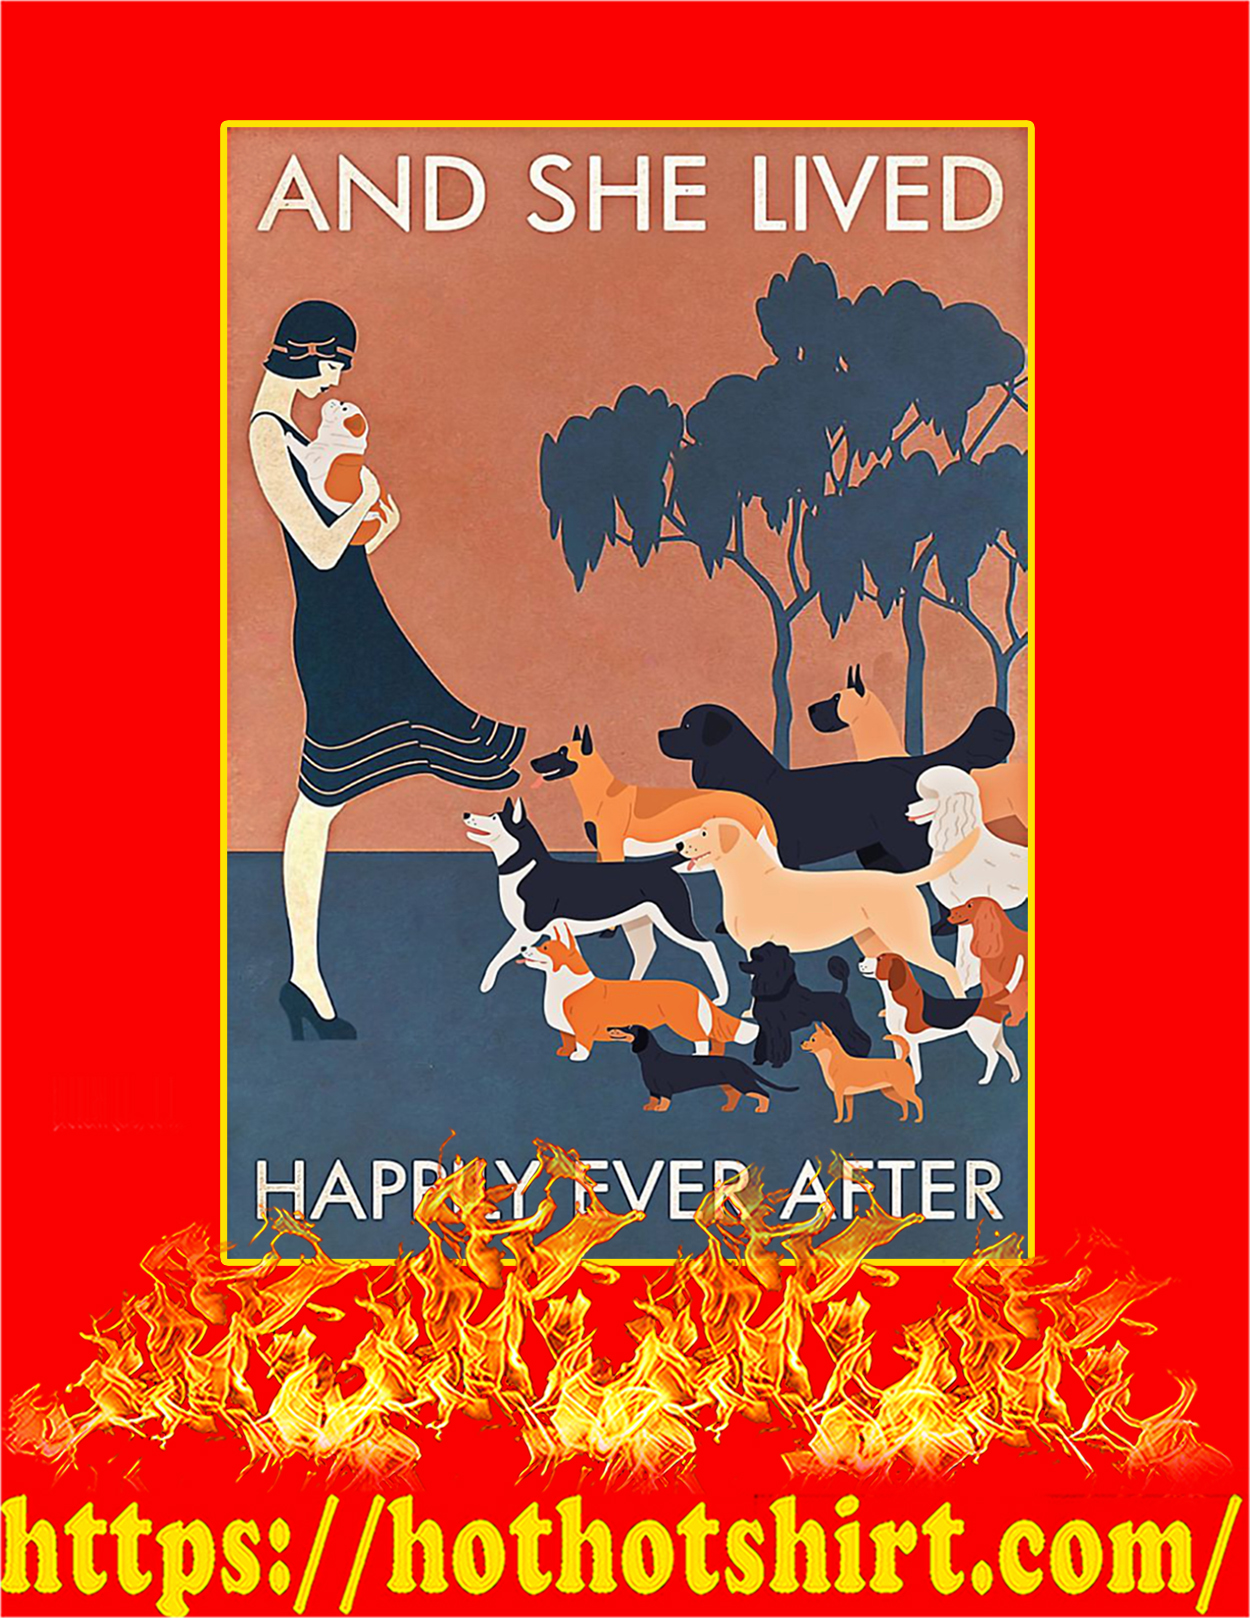 Dog And she lived happily ever after poster - A3